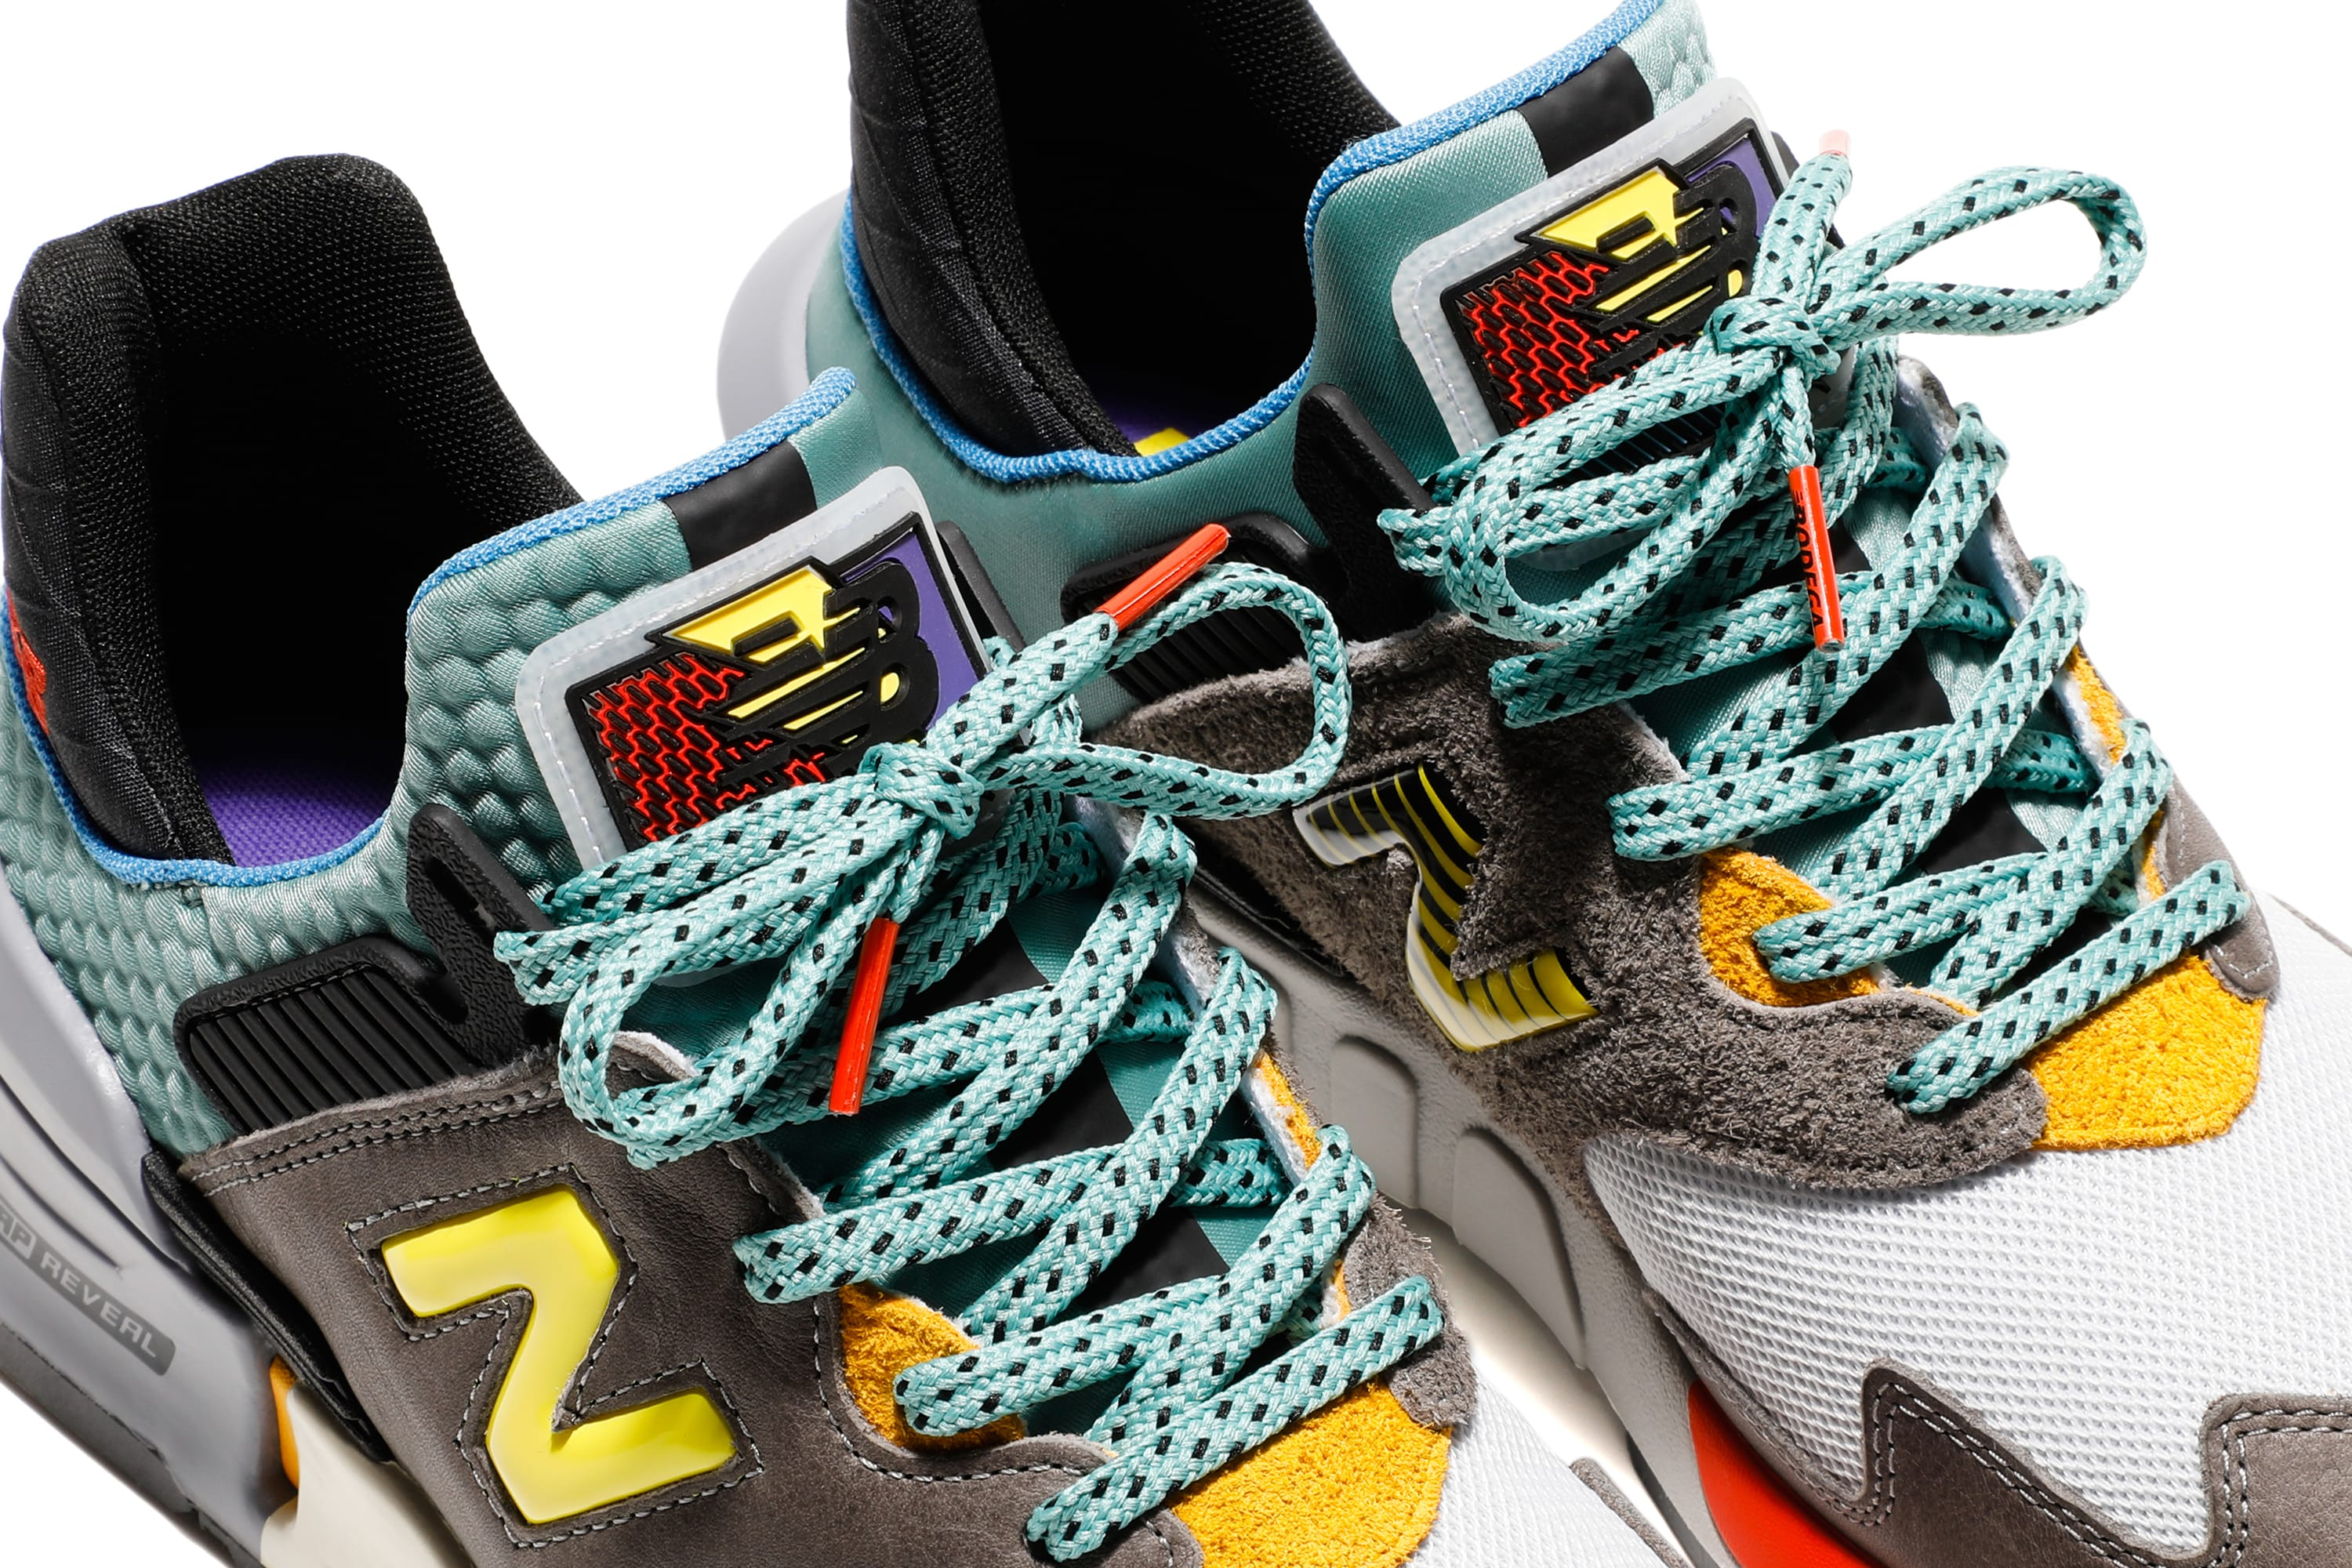 Bodega x New Balance 997S 'No Bad Days' Release Date | Sole ...